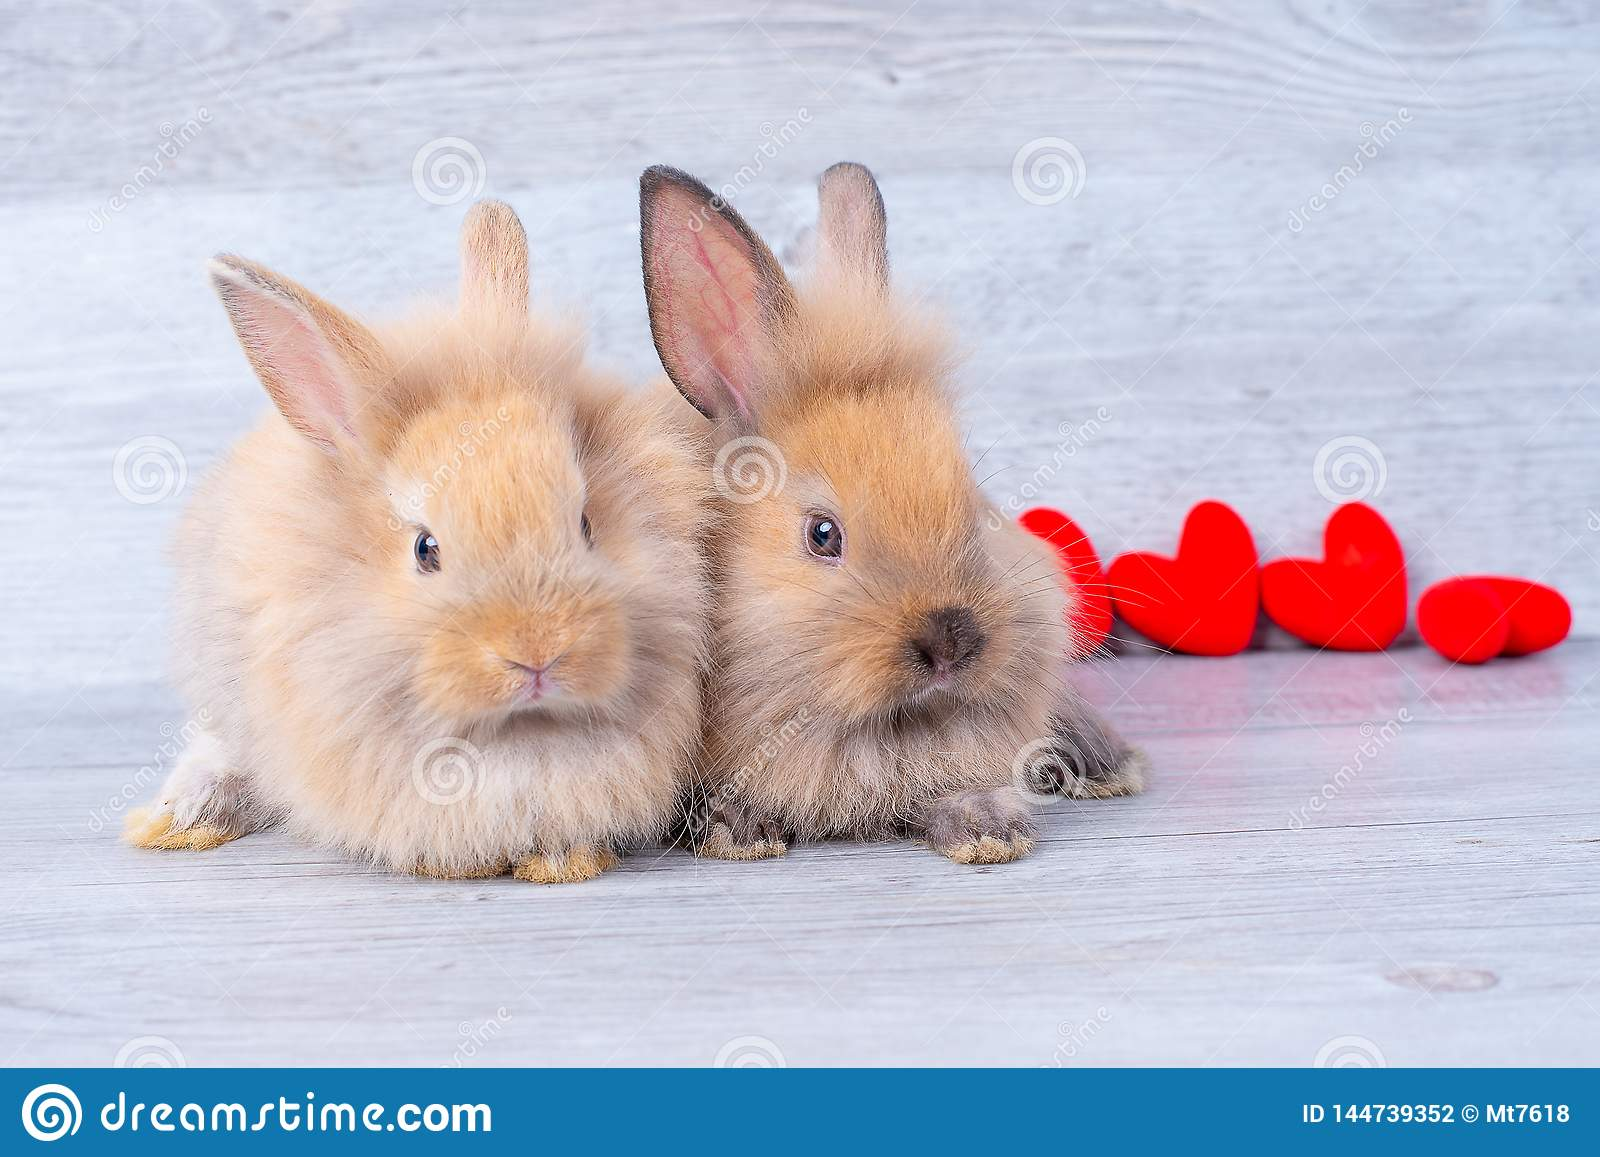 Couple small light brown bunny rabbits on gray background in valentines theme with mini heart behind them